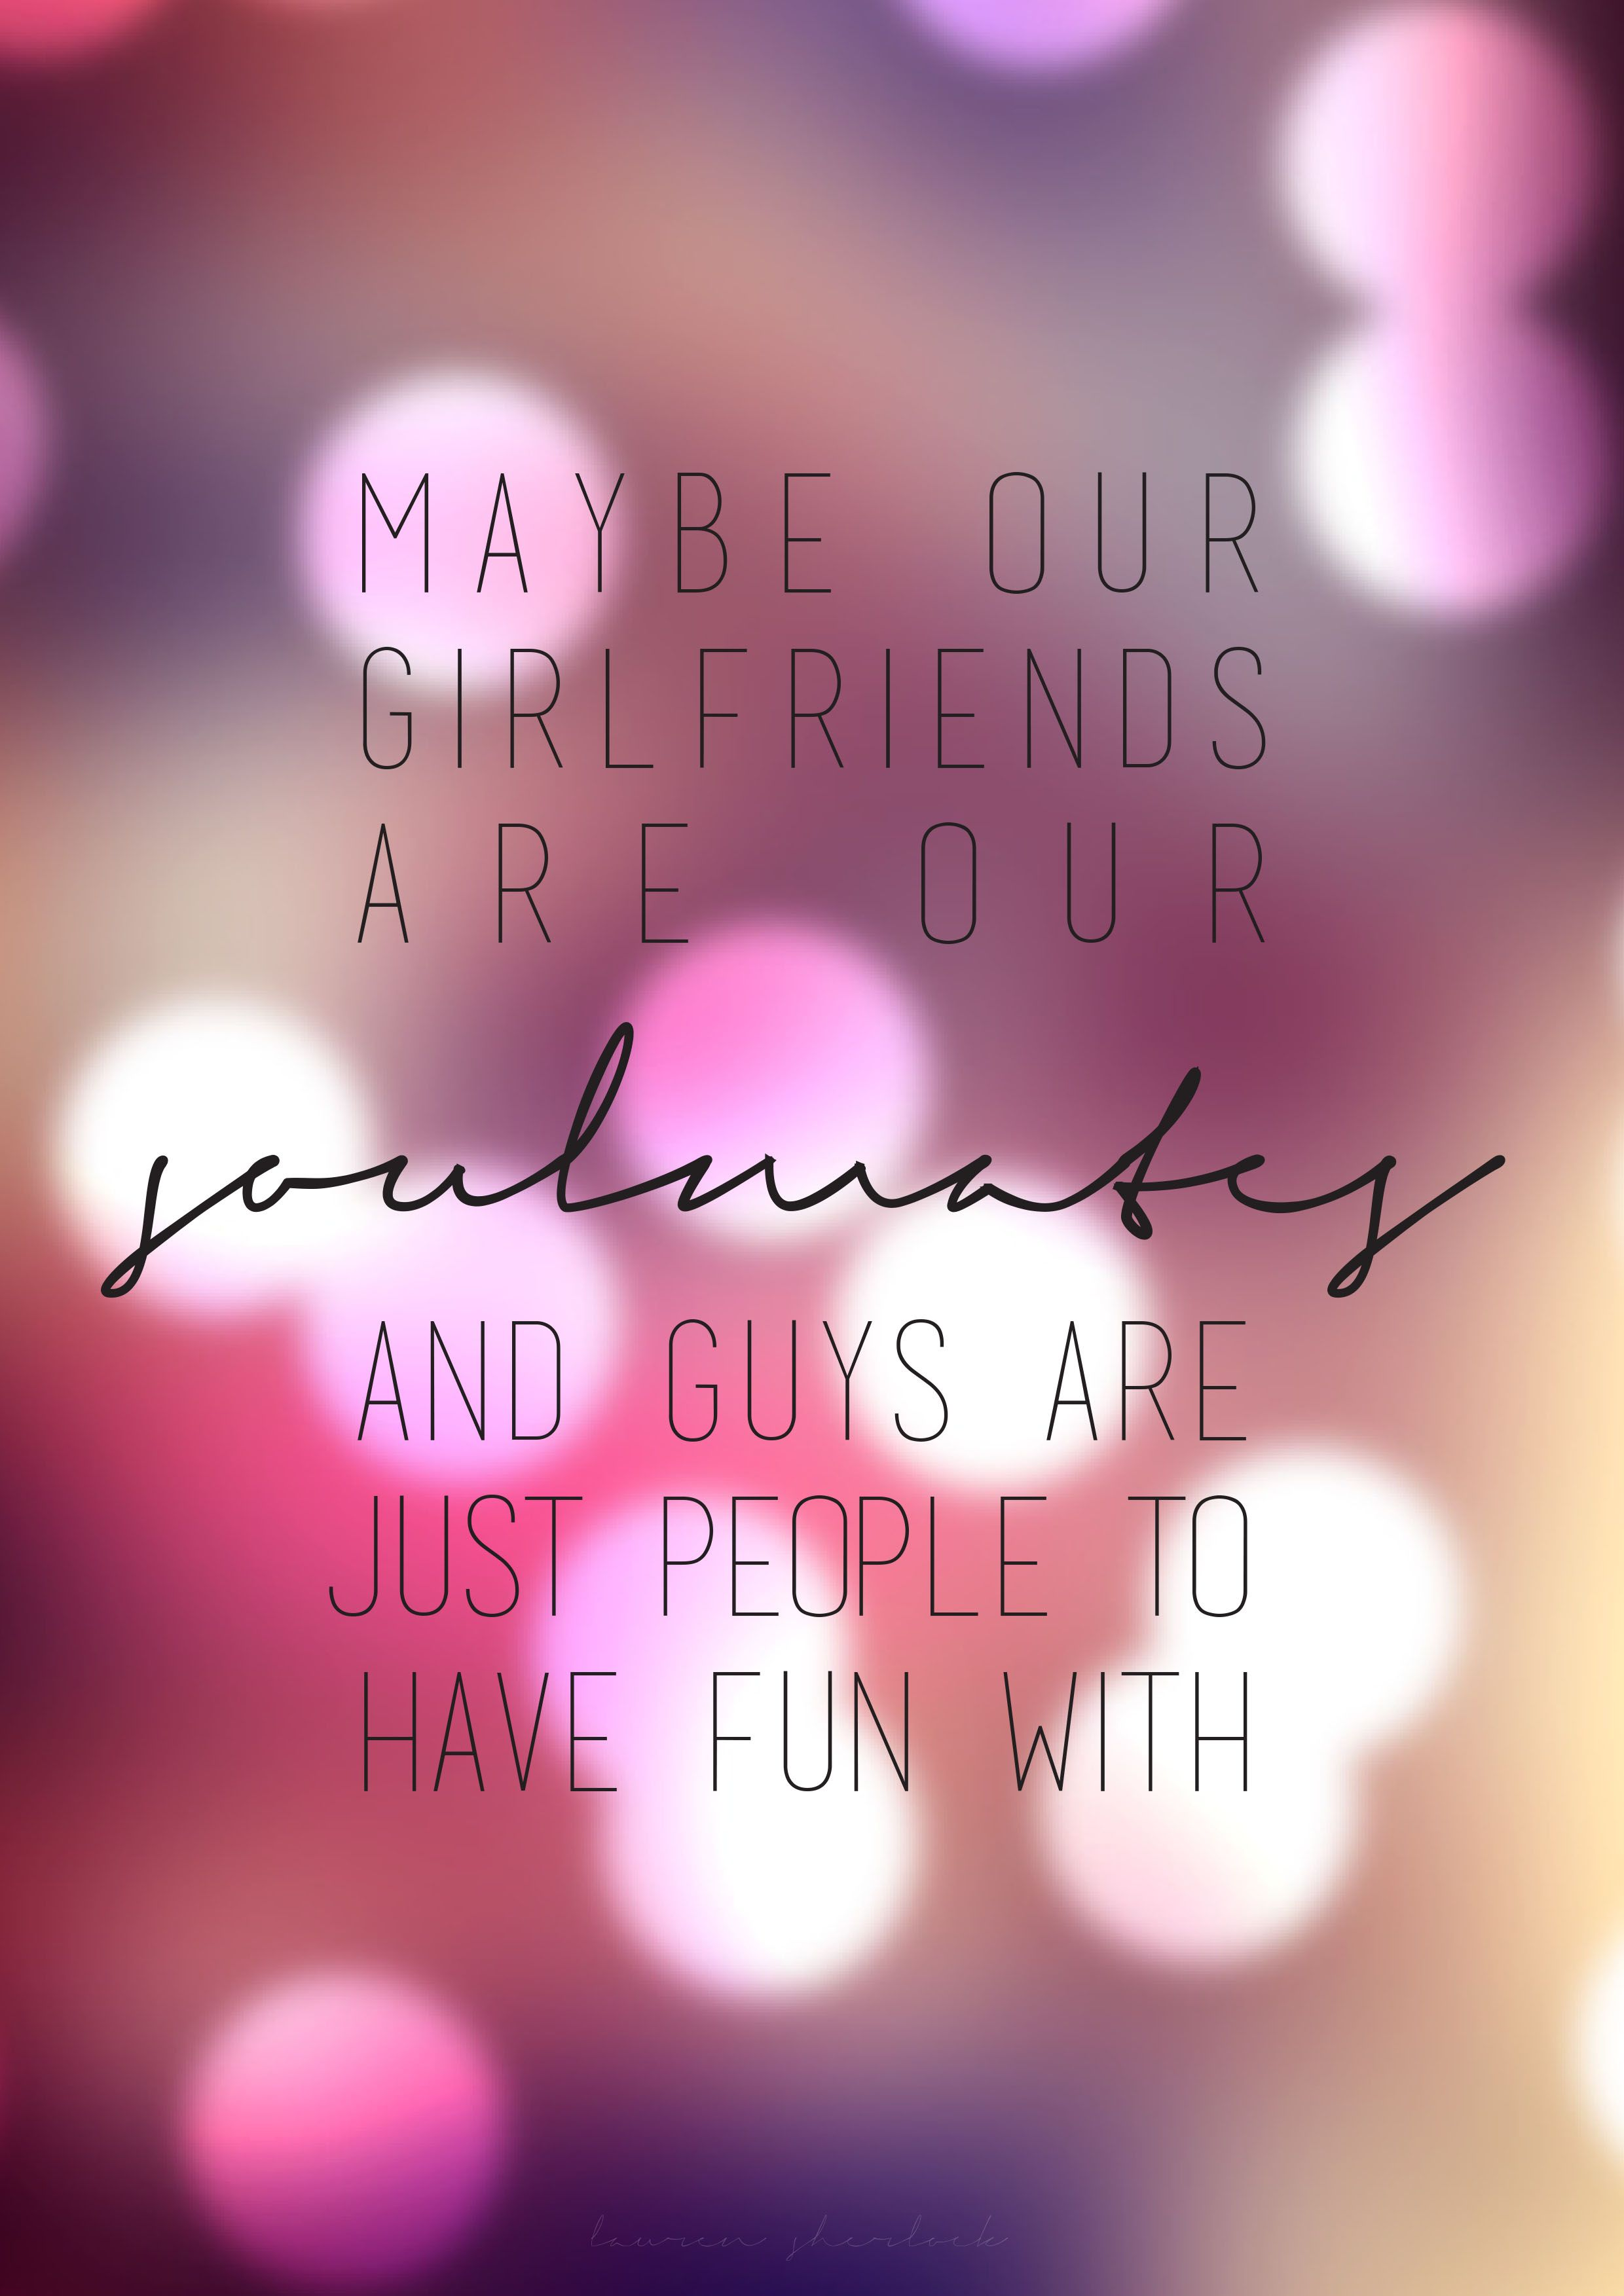 Maybe our girlfriends are our soulmates and guys are just people to have fun with - Carrie Bradshaw (Sex and the City) Quote about friendship